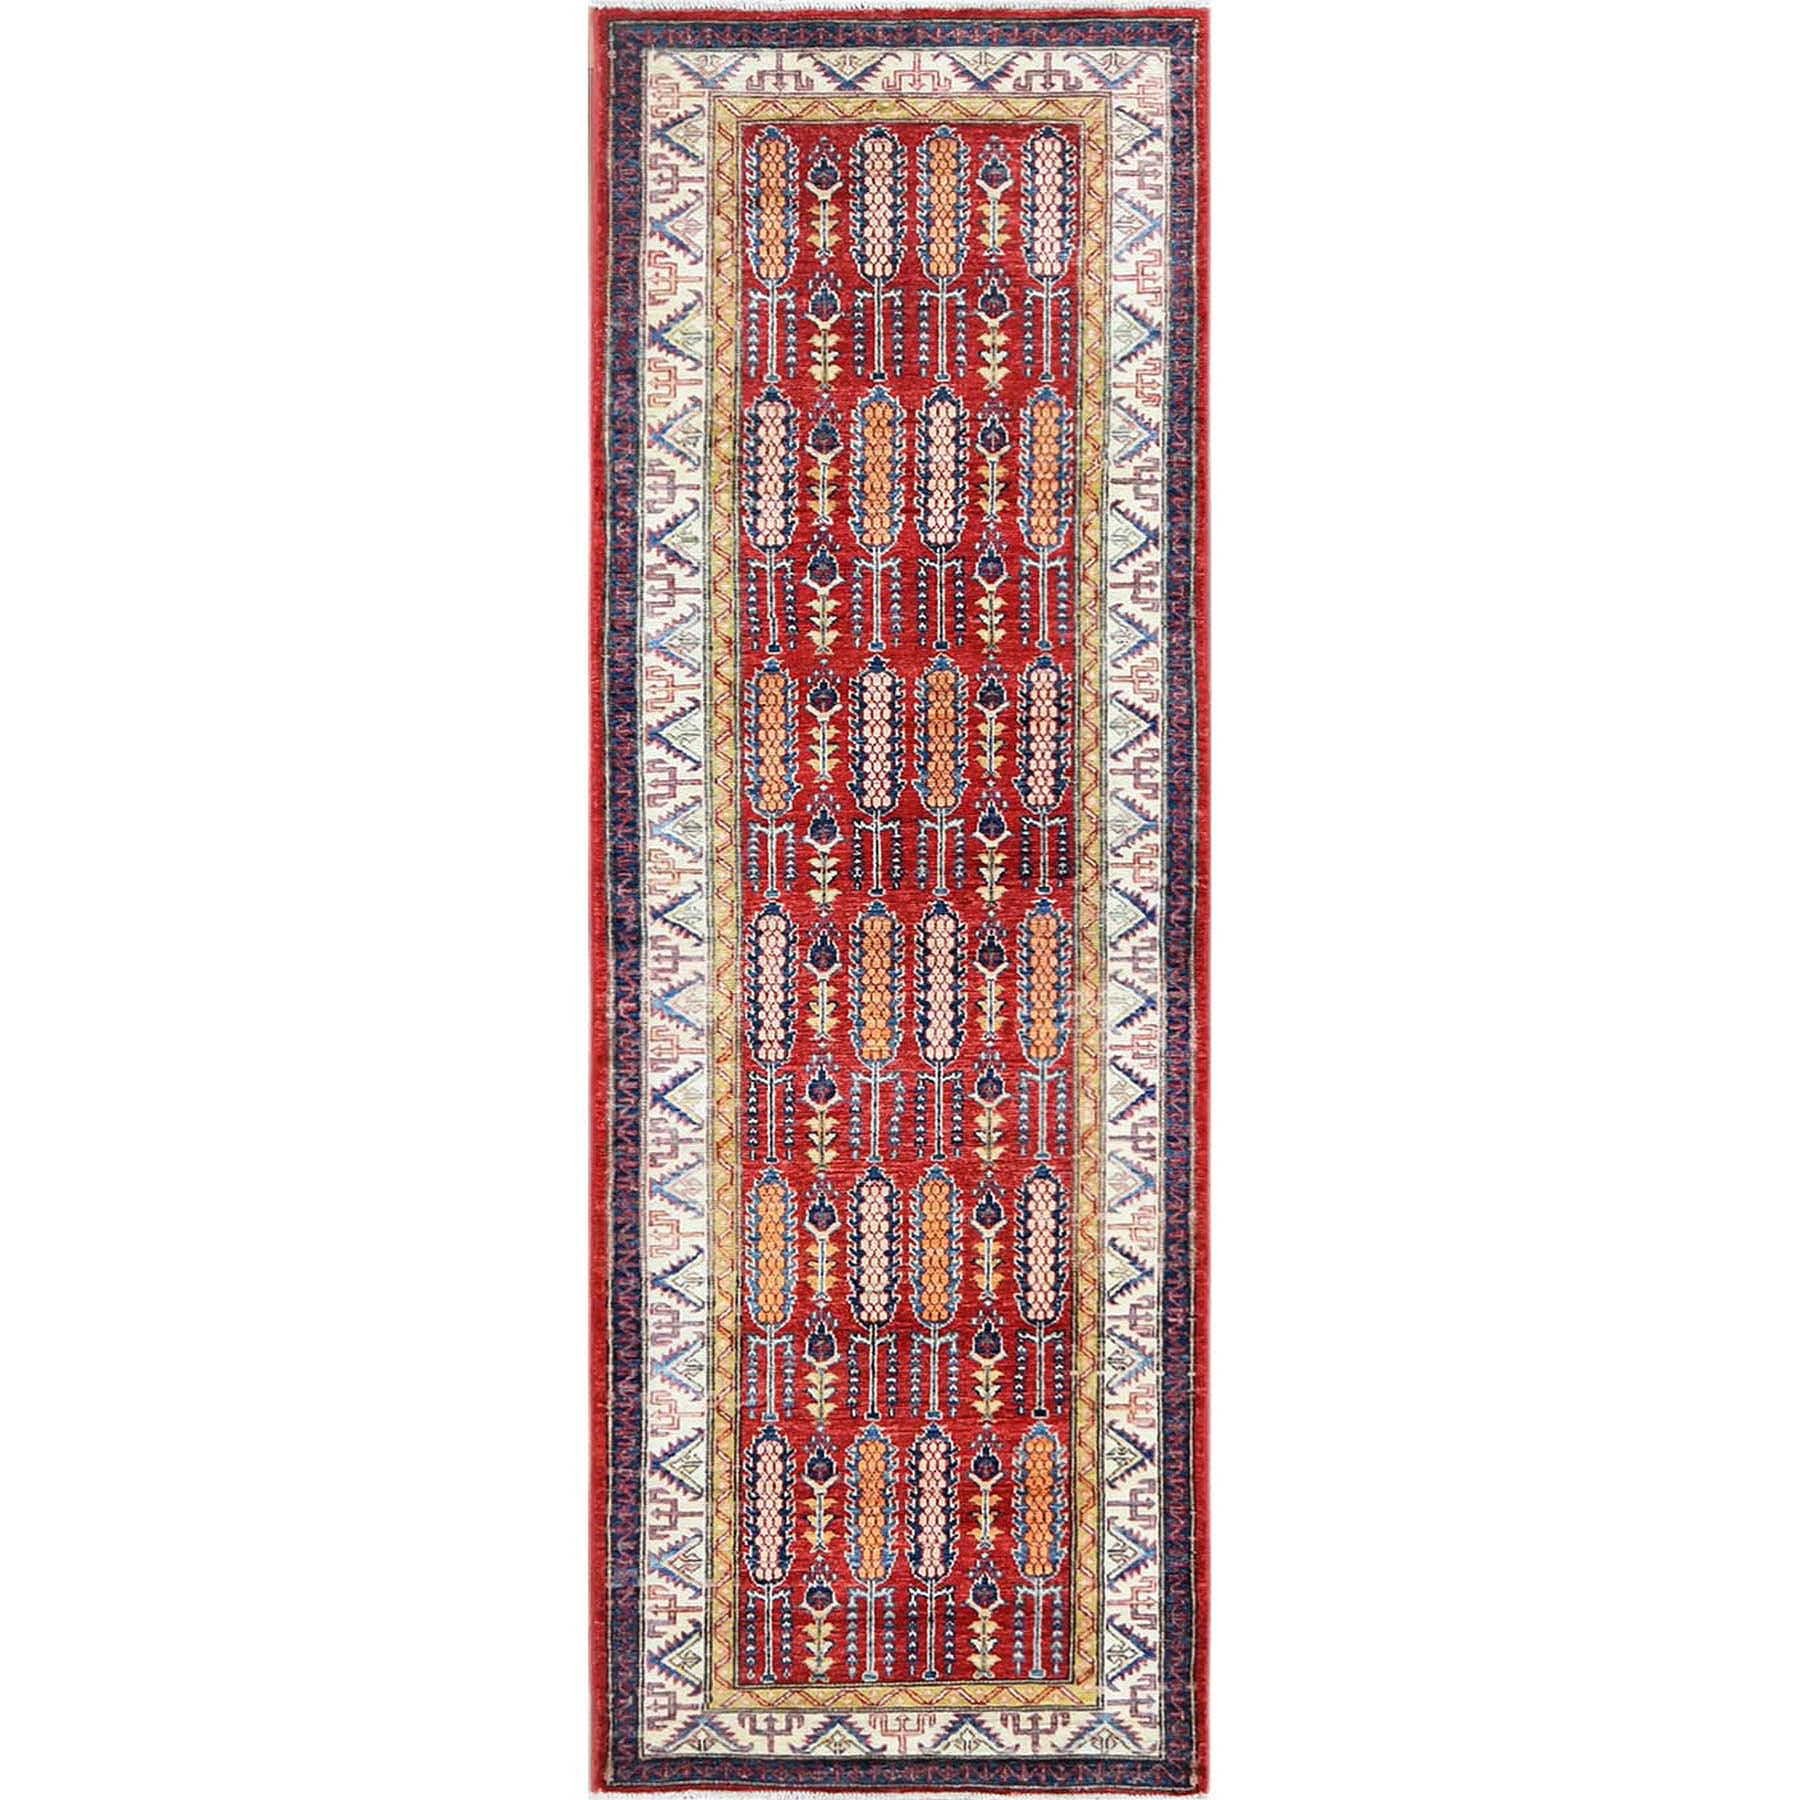 "2'8""x8'2"" Red Afghan Super Kazak with Cypress Tree Design Pure Wool Hand Woven Runner Oriental Rug"